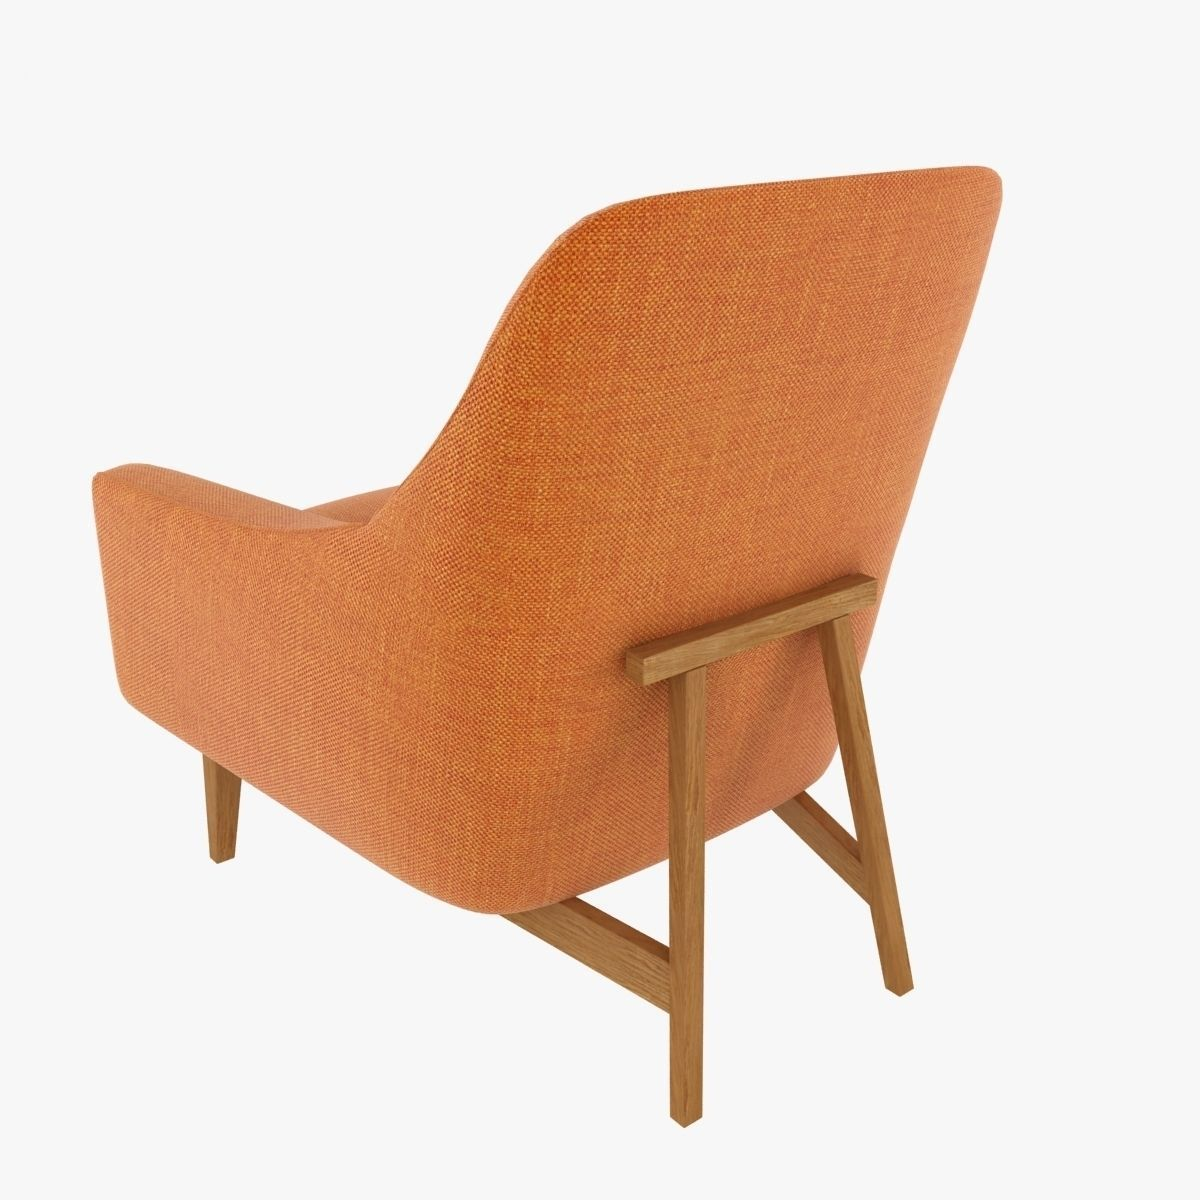 ... Ralph Pucci Jens Risom Chair 3d Model Max Obj 3ds Fbx Mtl 4 ...